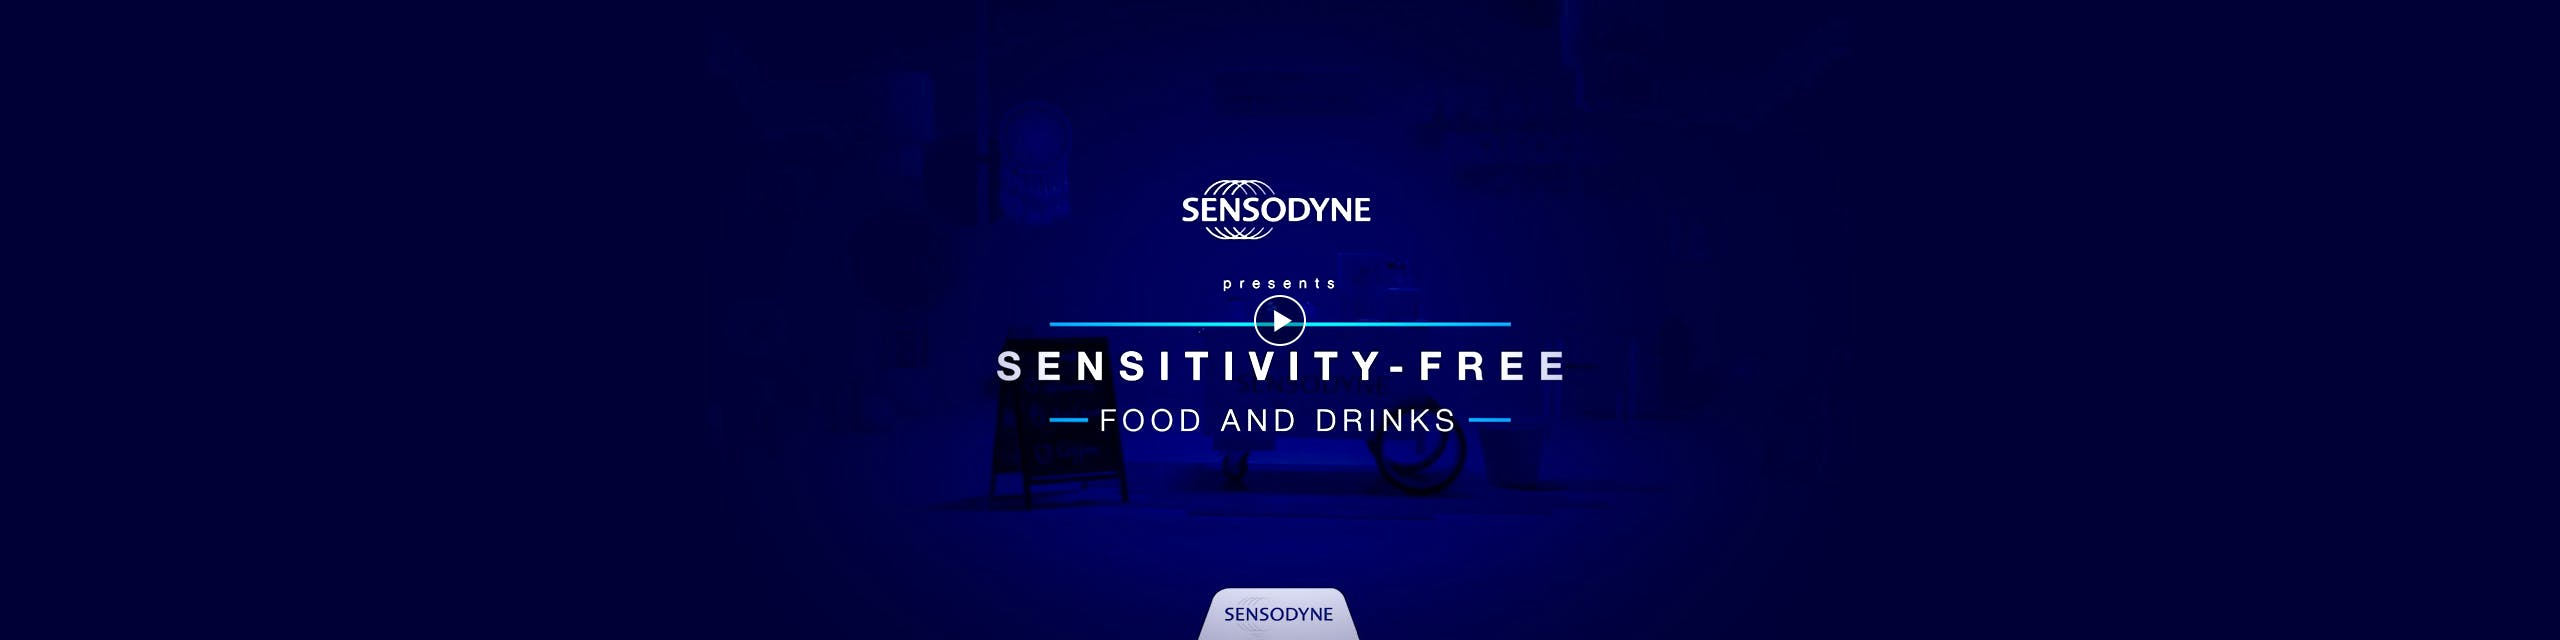 Sensodyne sensitivity free